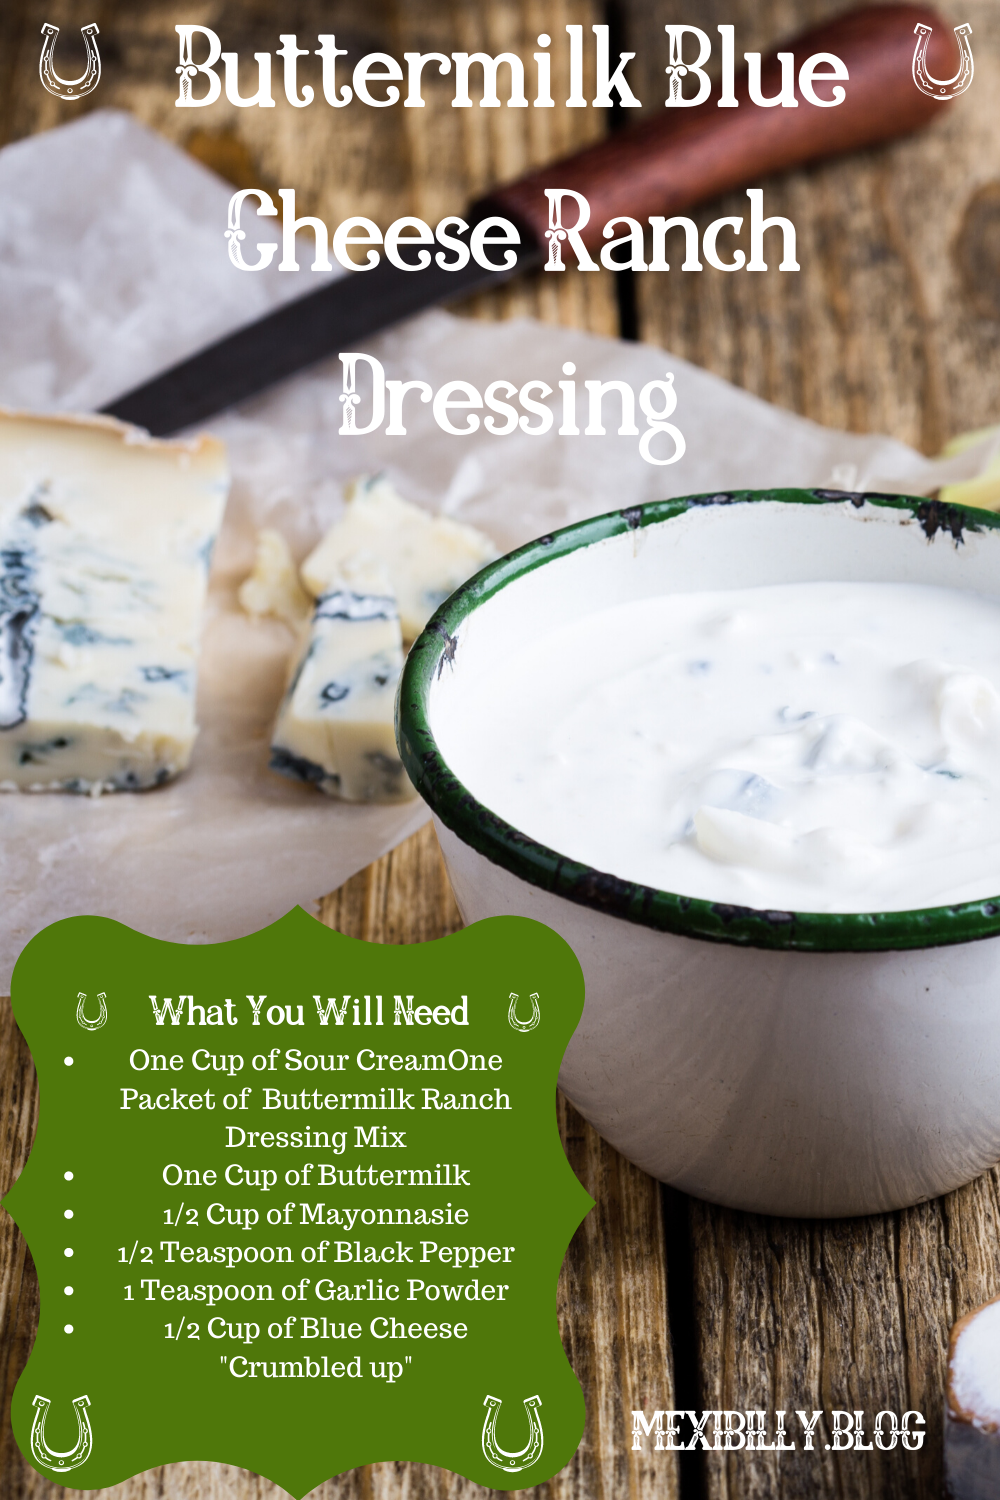 Buttermilk Blue Cheese Ranch Dressing In 2020 Blue Cheese Ranch Dressing Food